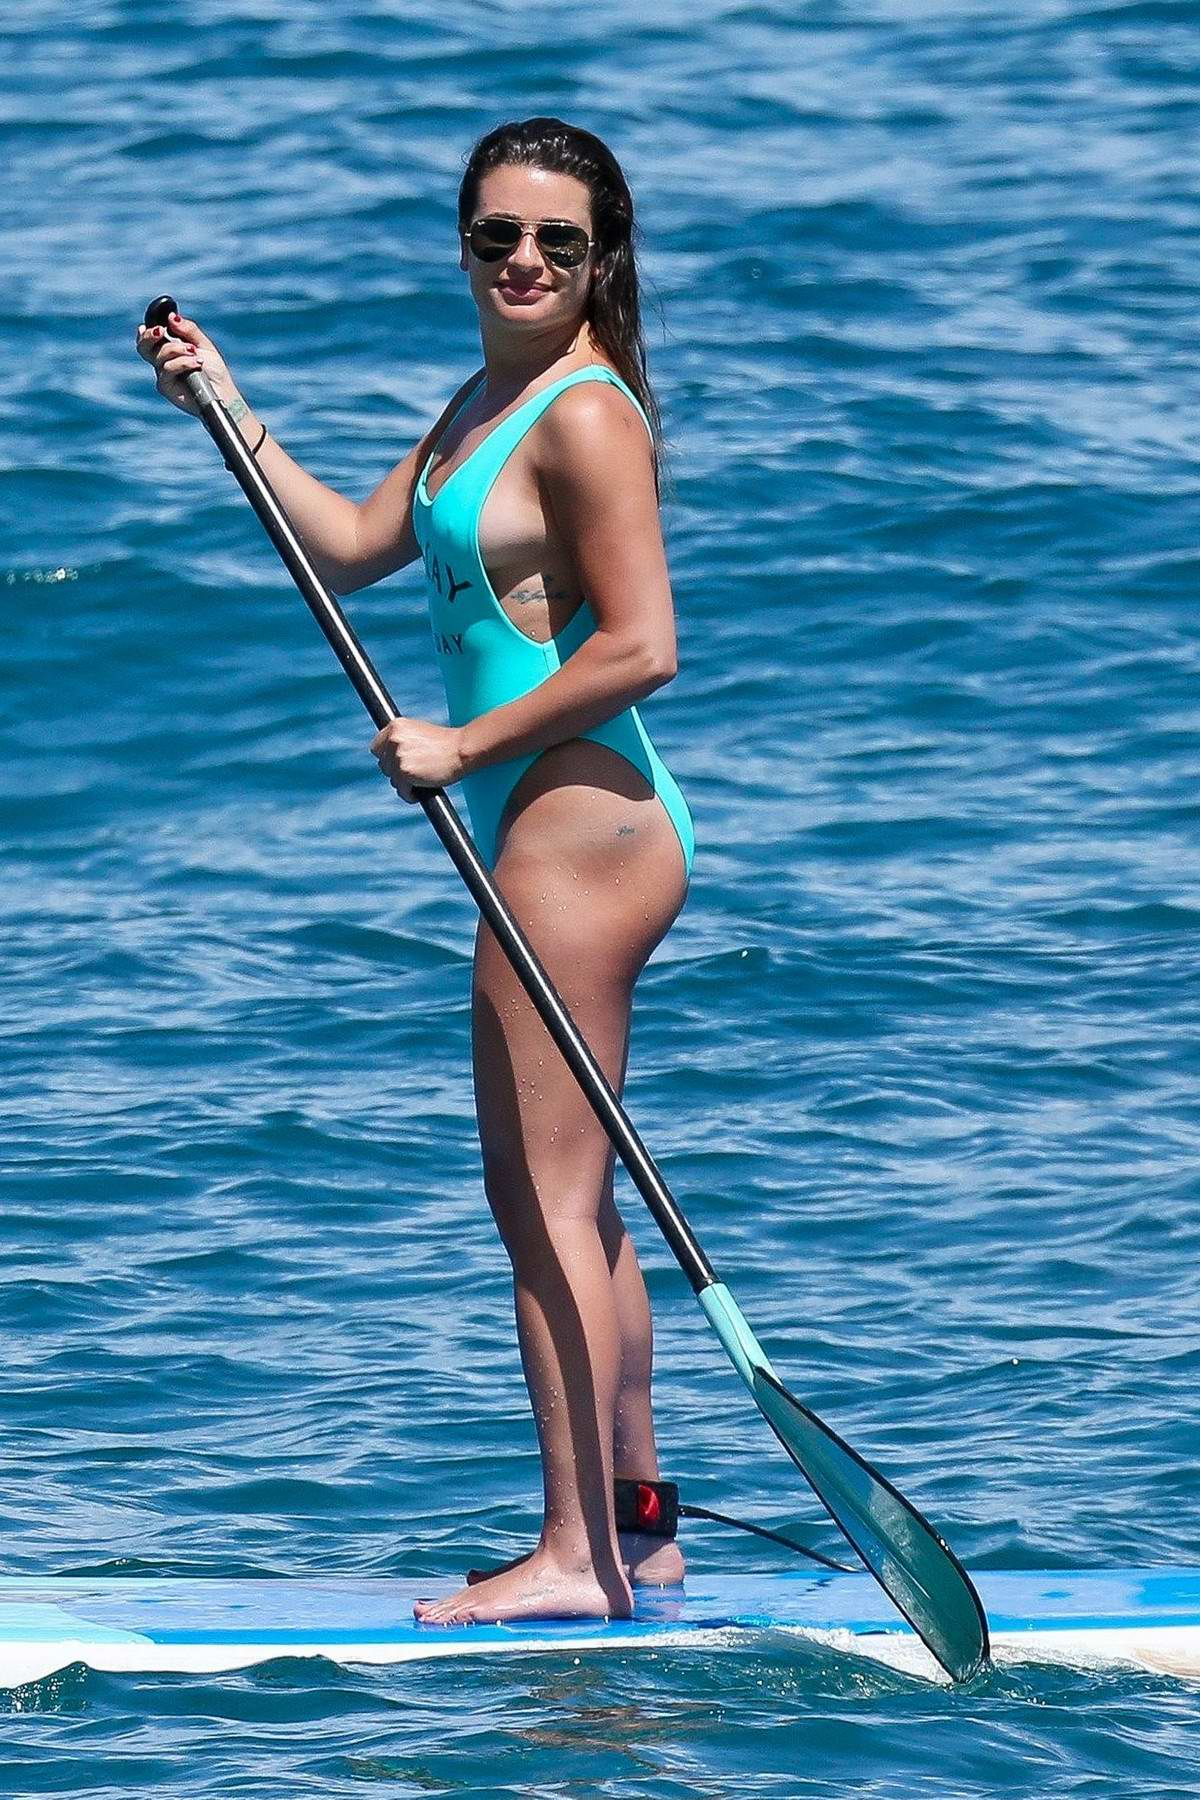 lea-michele-in-a-blue-swimsuit-shows-off-her-yoga-skills-on-a-paddle-board-in-maui-hawaii-300617_1.jpg